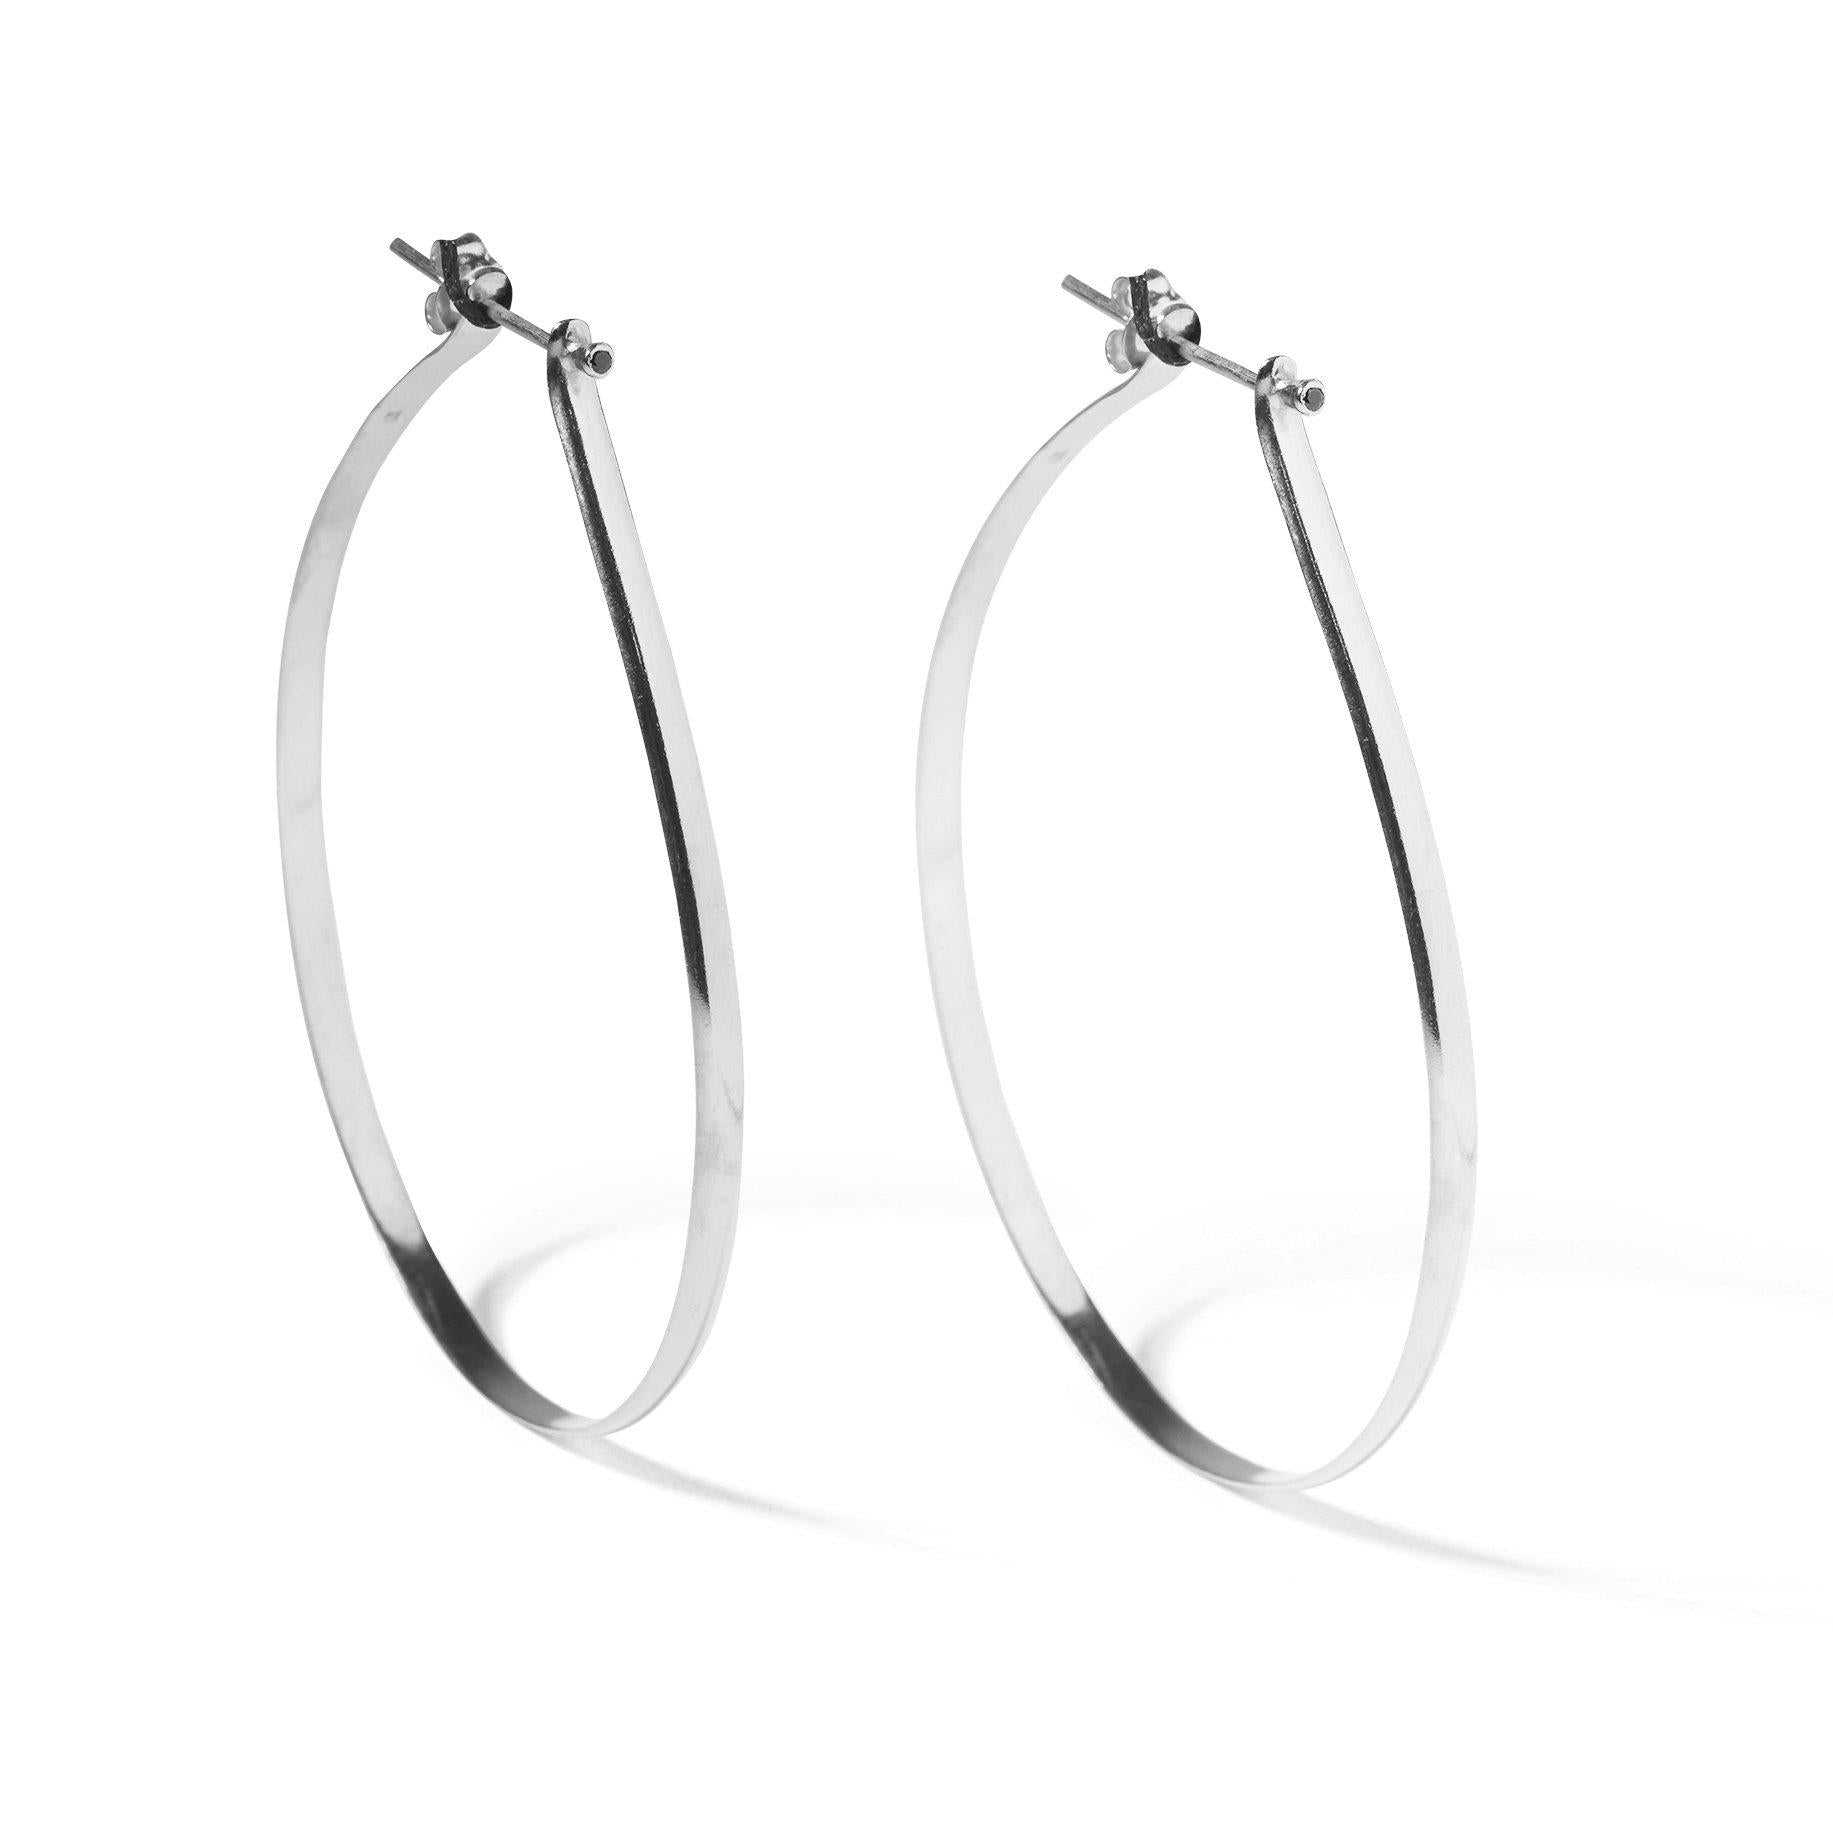 The Silver Spiked Hoops